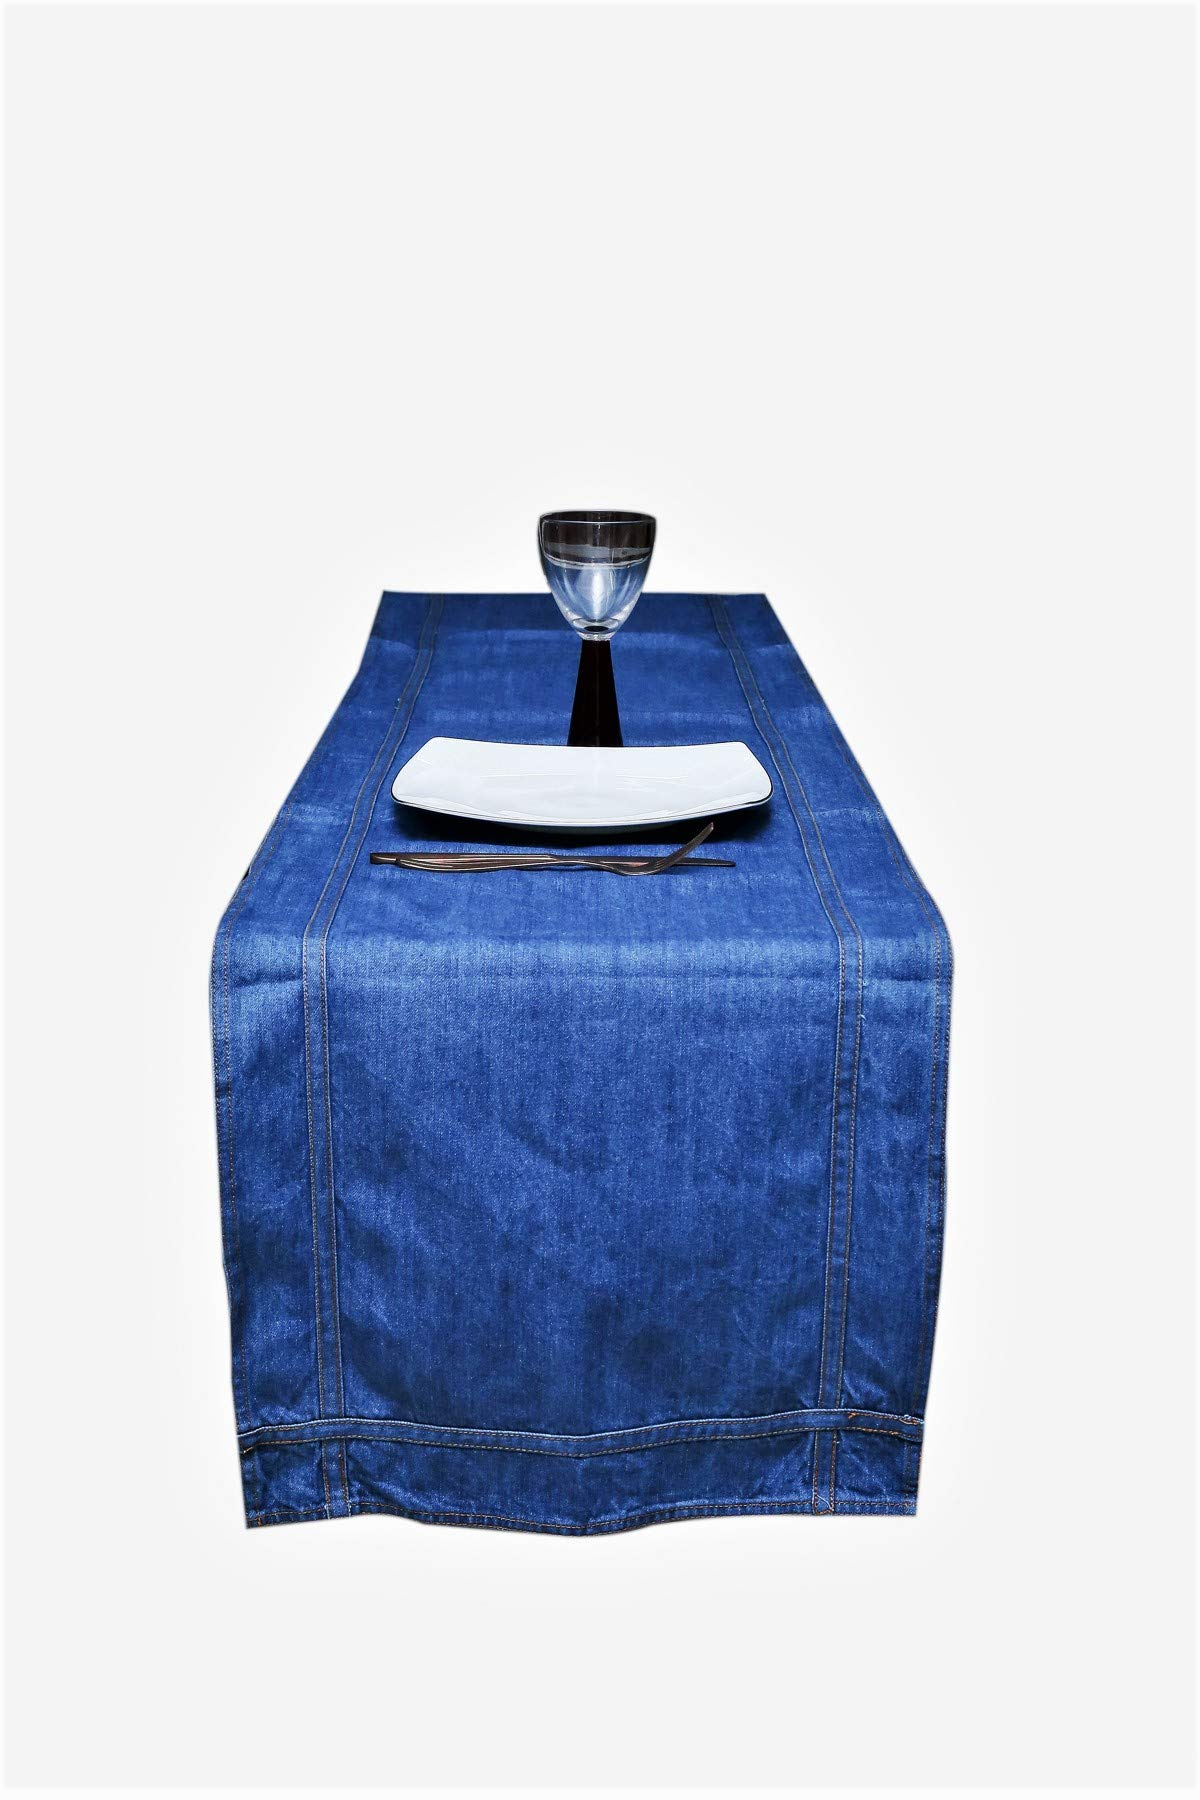 AAYU Trendy Denim Table Runner Placemats | Stone Washed Premium Quality | Perfect for Wedding, Party & Decor American Jeans (16 Inch x 108 Inch, All Over Belt Loop)